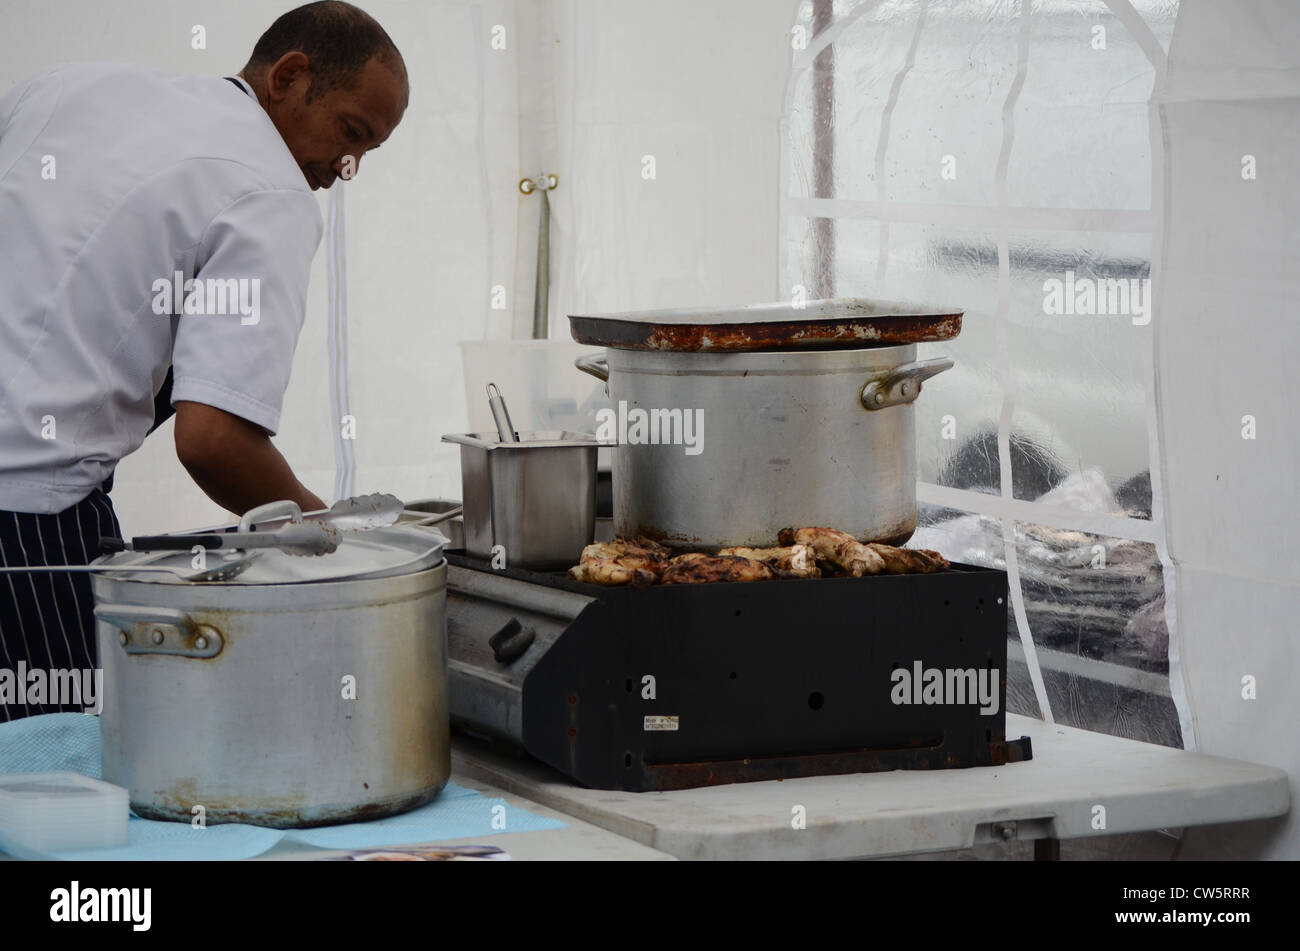 Chef preparing Afro-Caribbean food on a market stall - Stock Image